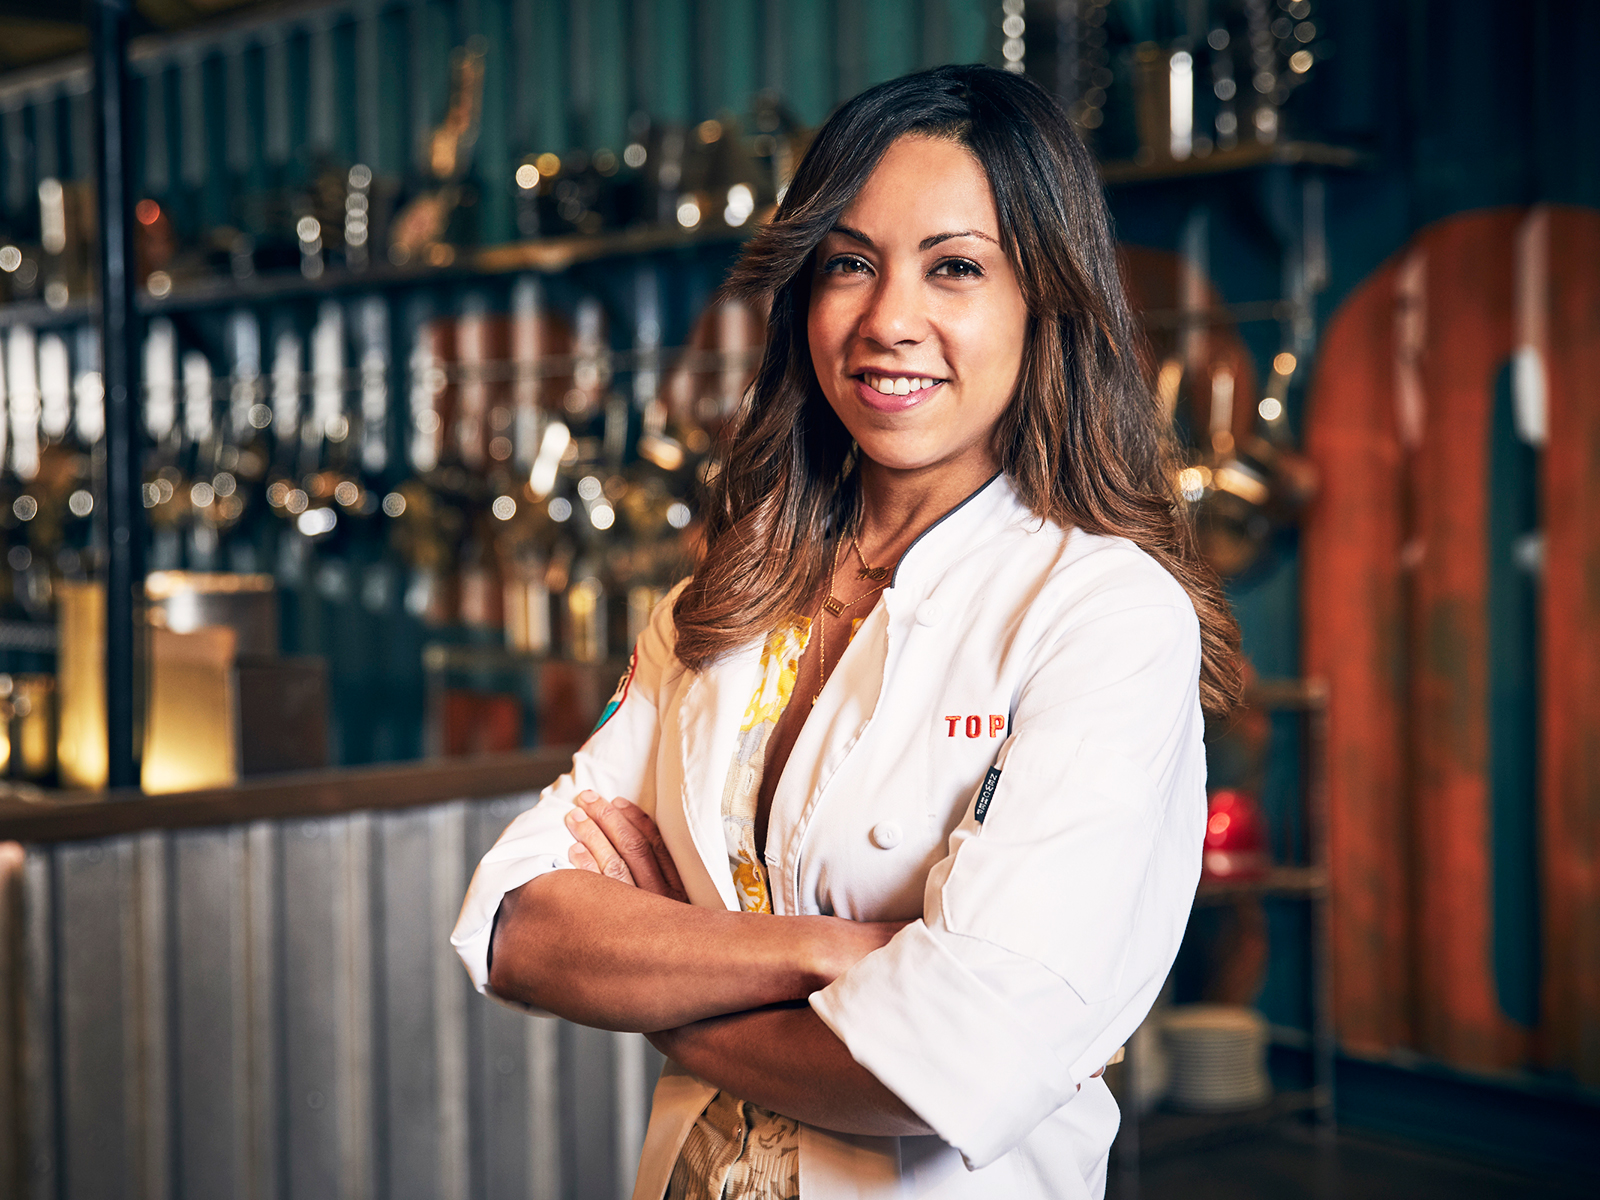 'Top Chef' Runner Up to Host Pop-Up Dinner Series in Harlem